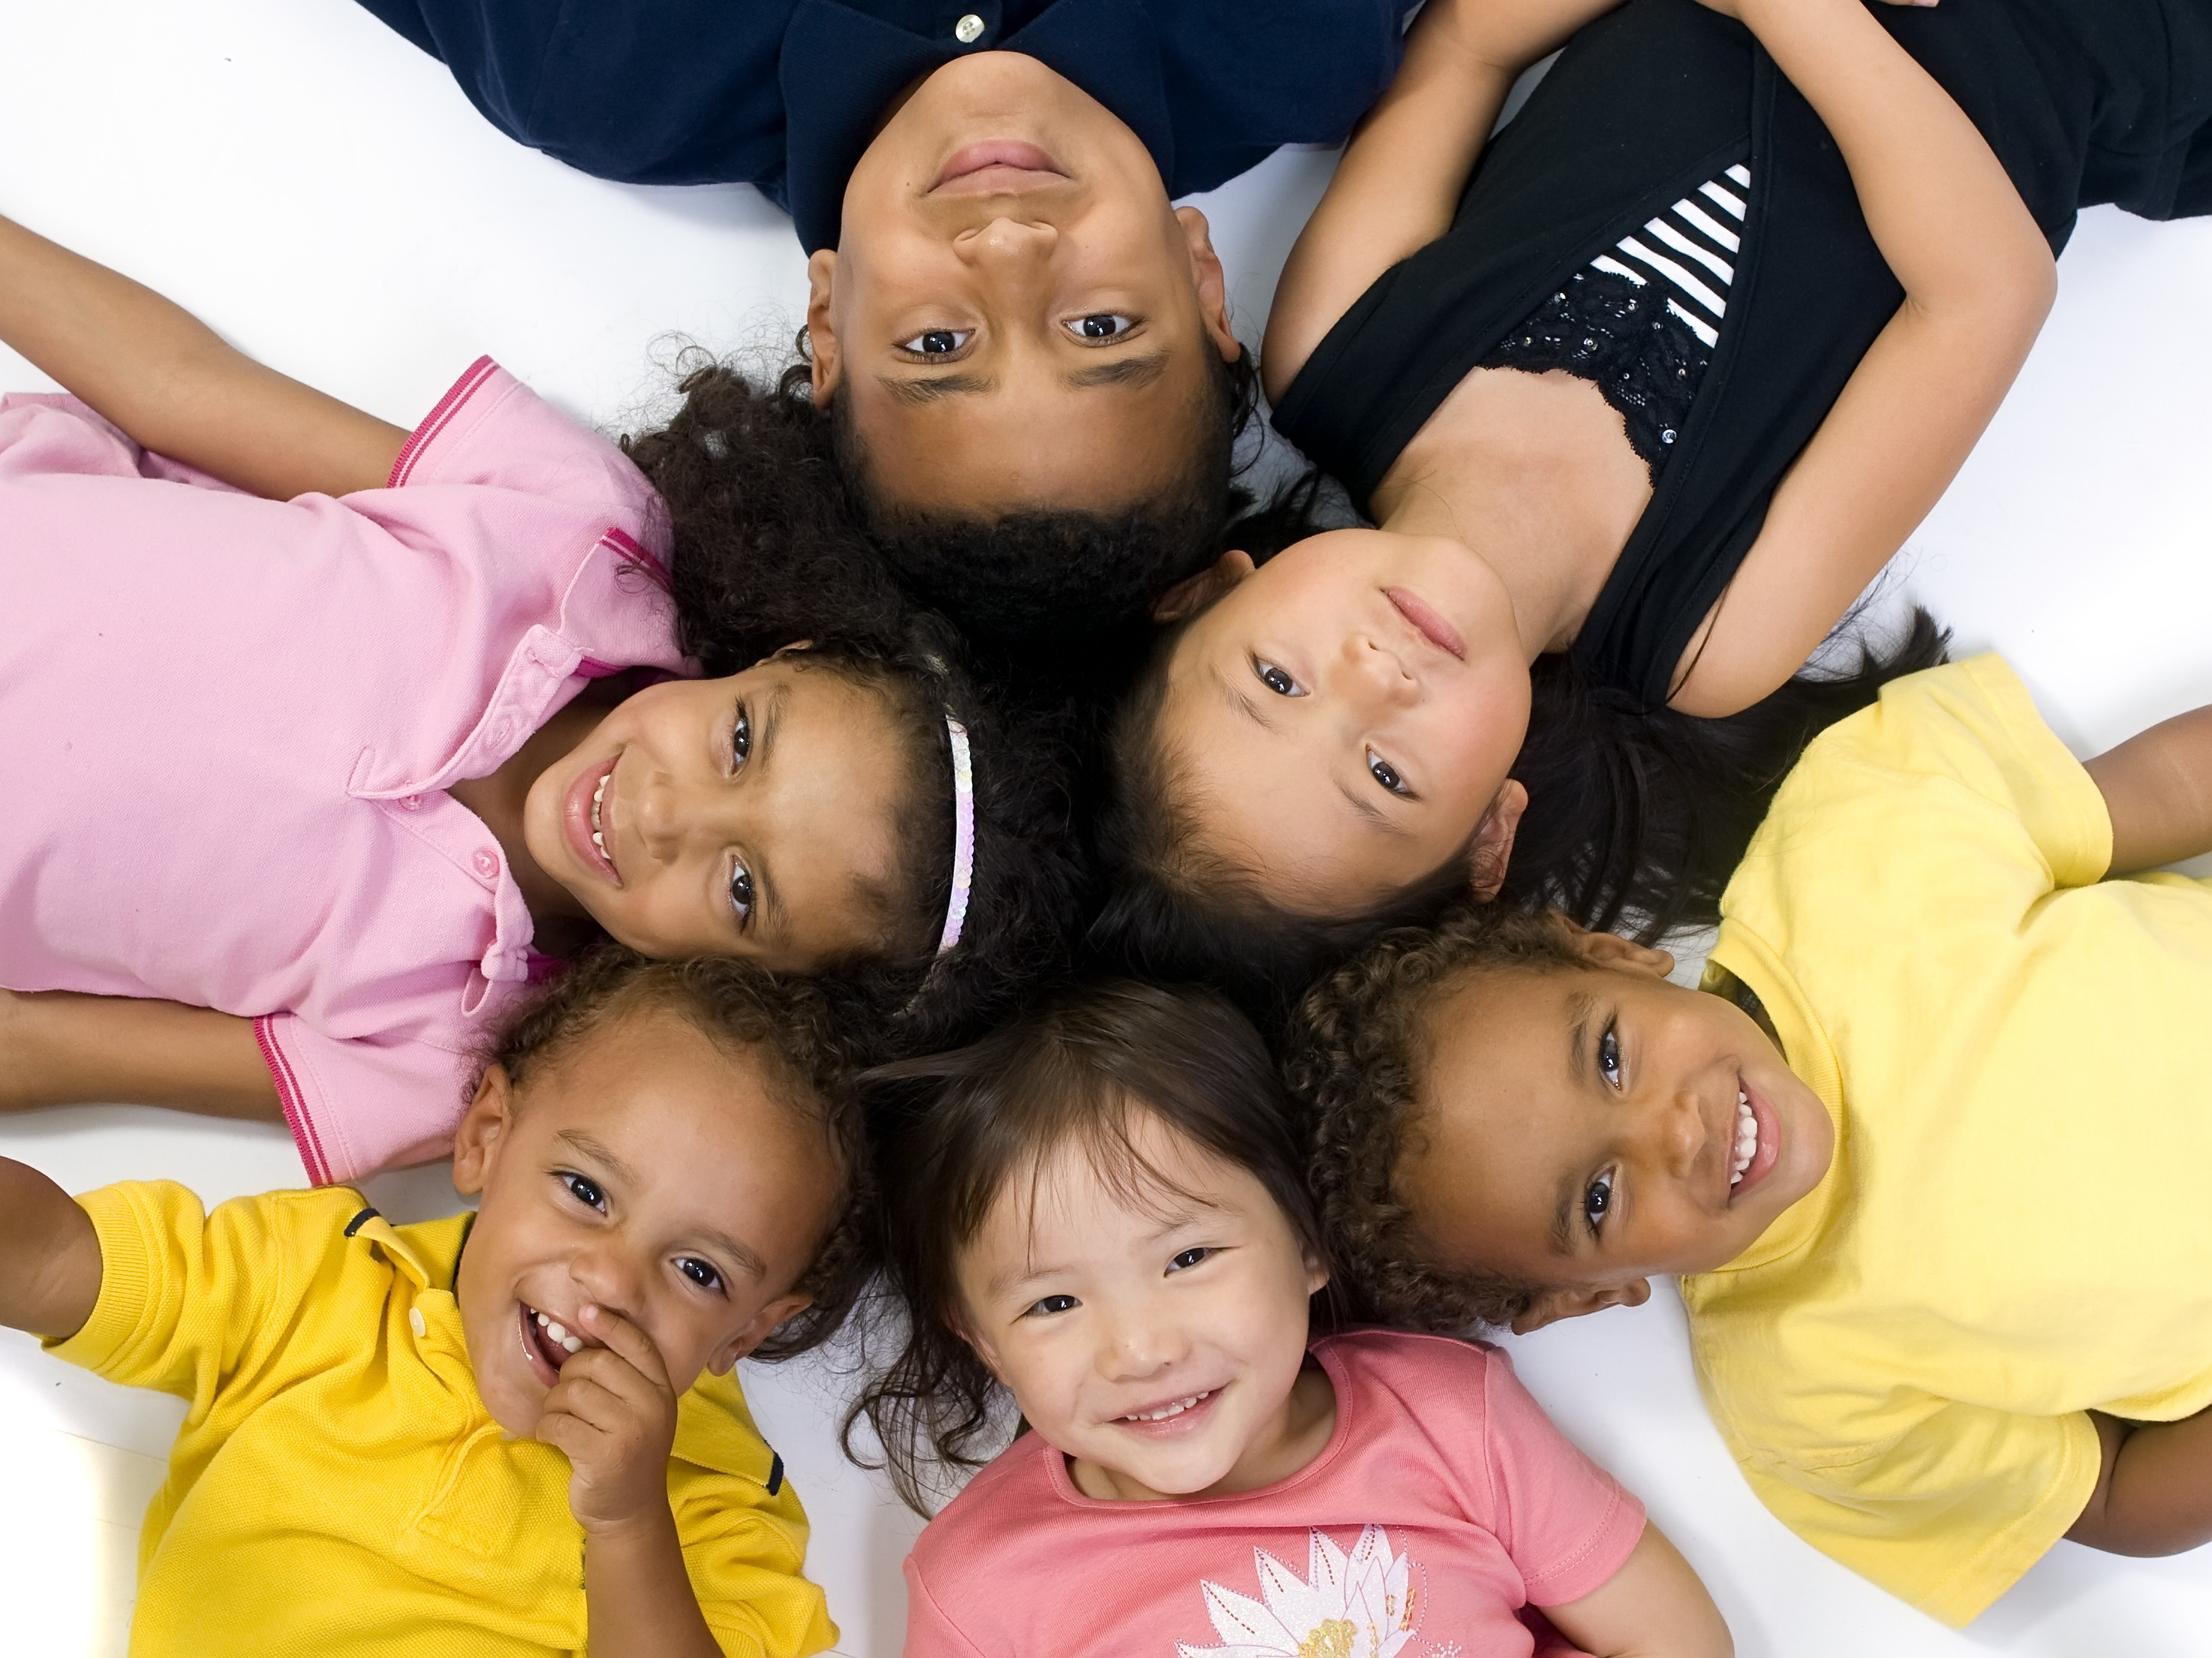 Head Start: National Child-Care Support